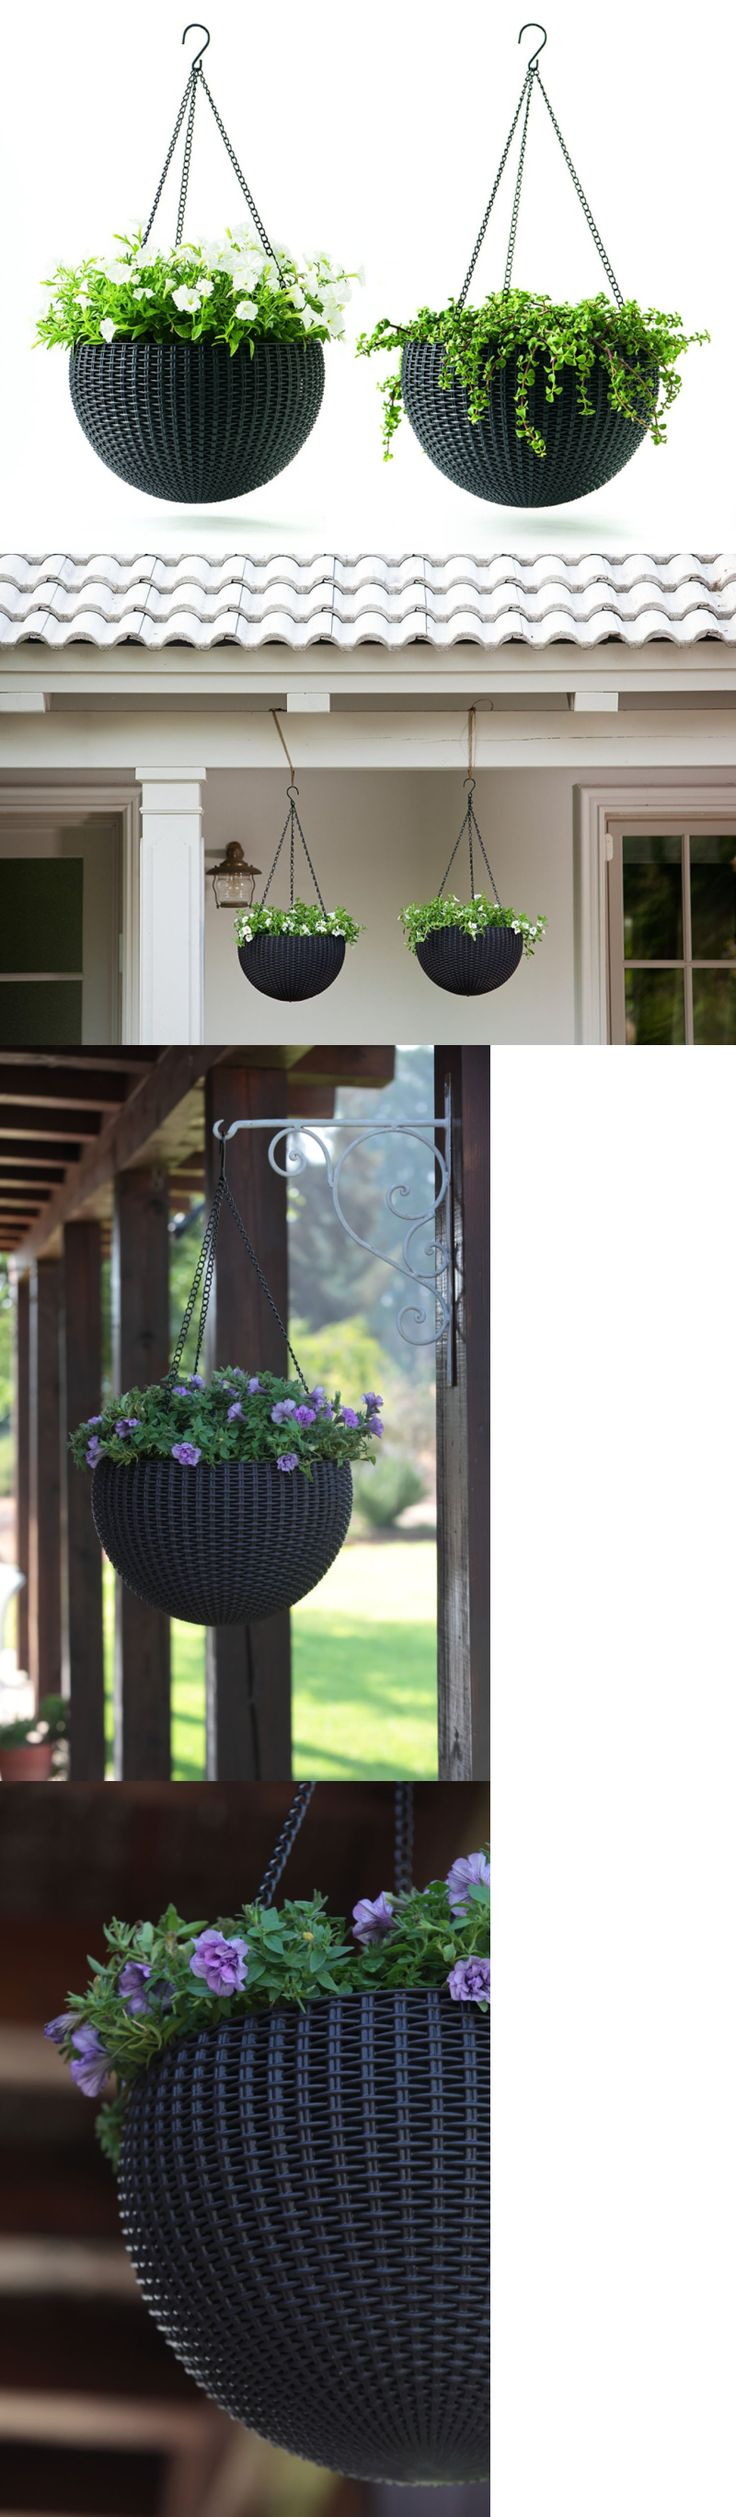 Baskets Pots and Window Boxes 20518: Keter Dia 13.8 In. Round Plastic Resin Garden Plant Hanging Planters Decor Pots -> BUY IT NOW ONLY: $48.46 on eBay!